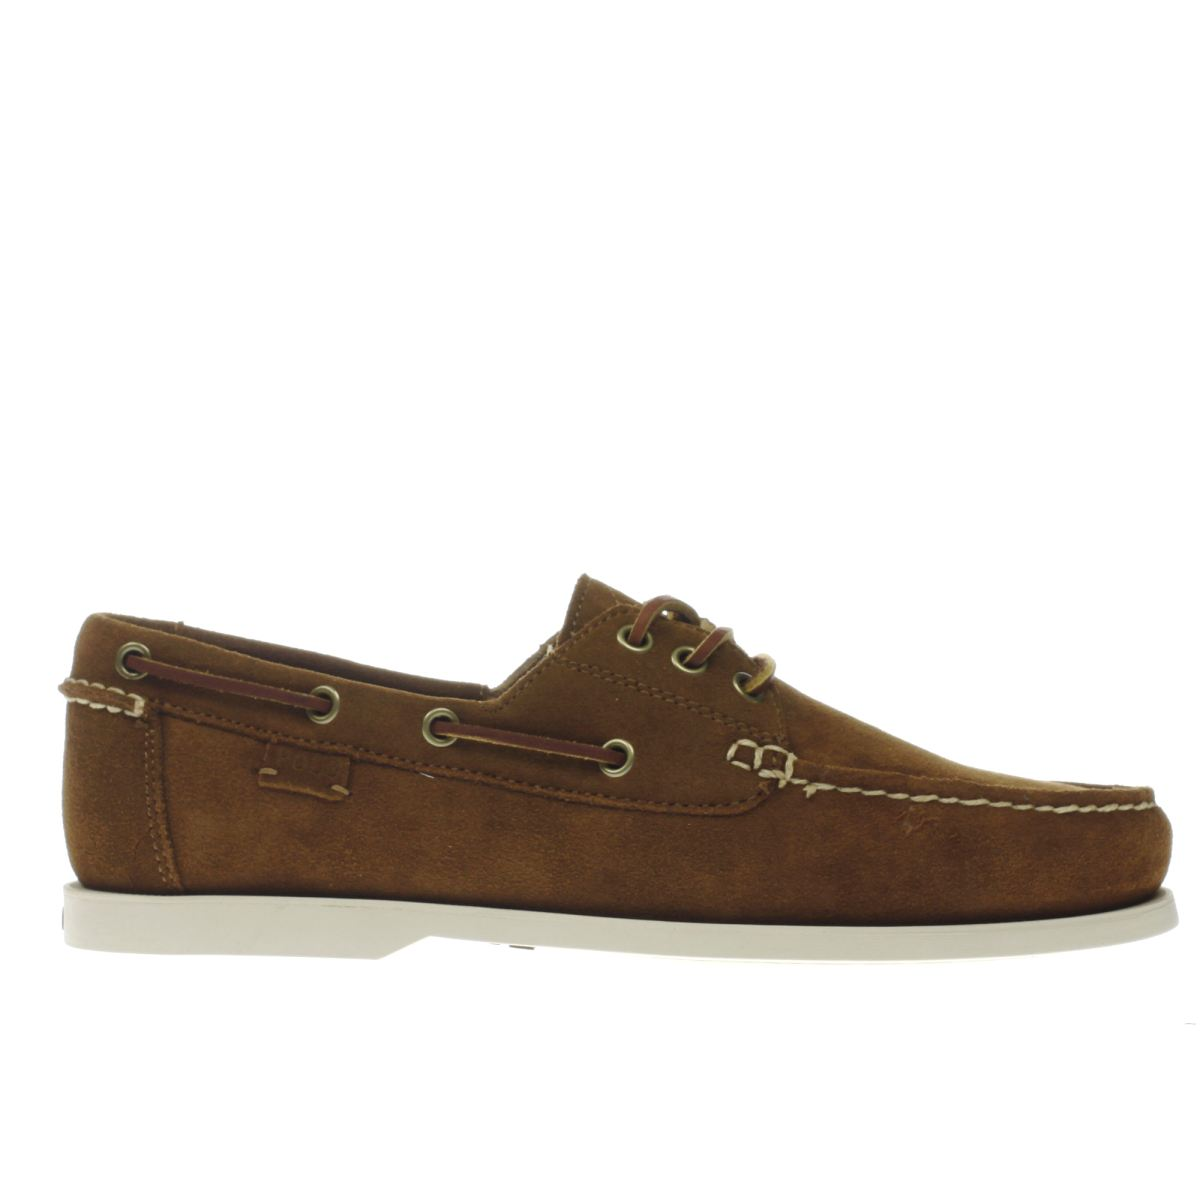 polo ralph lauren tan bienne ii shoes